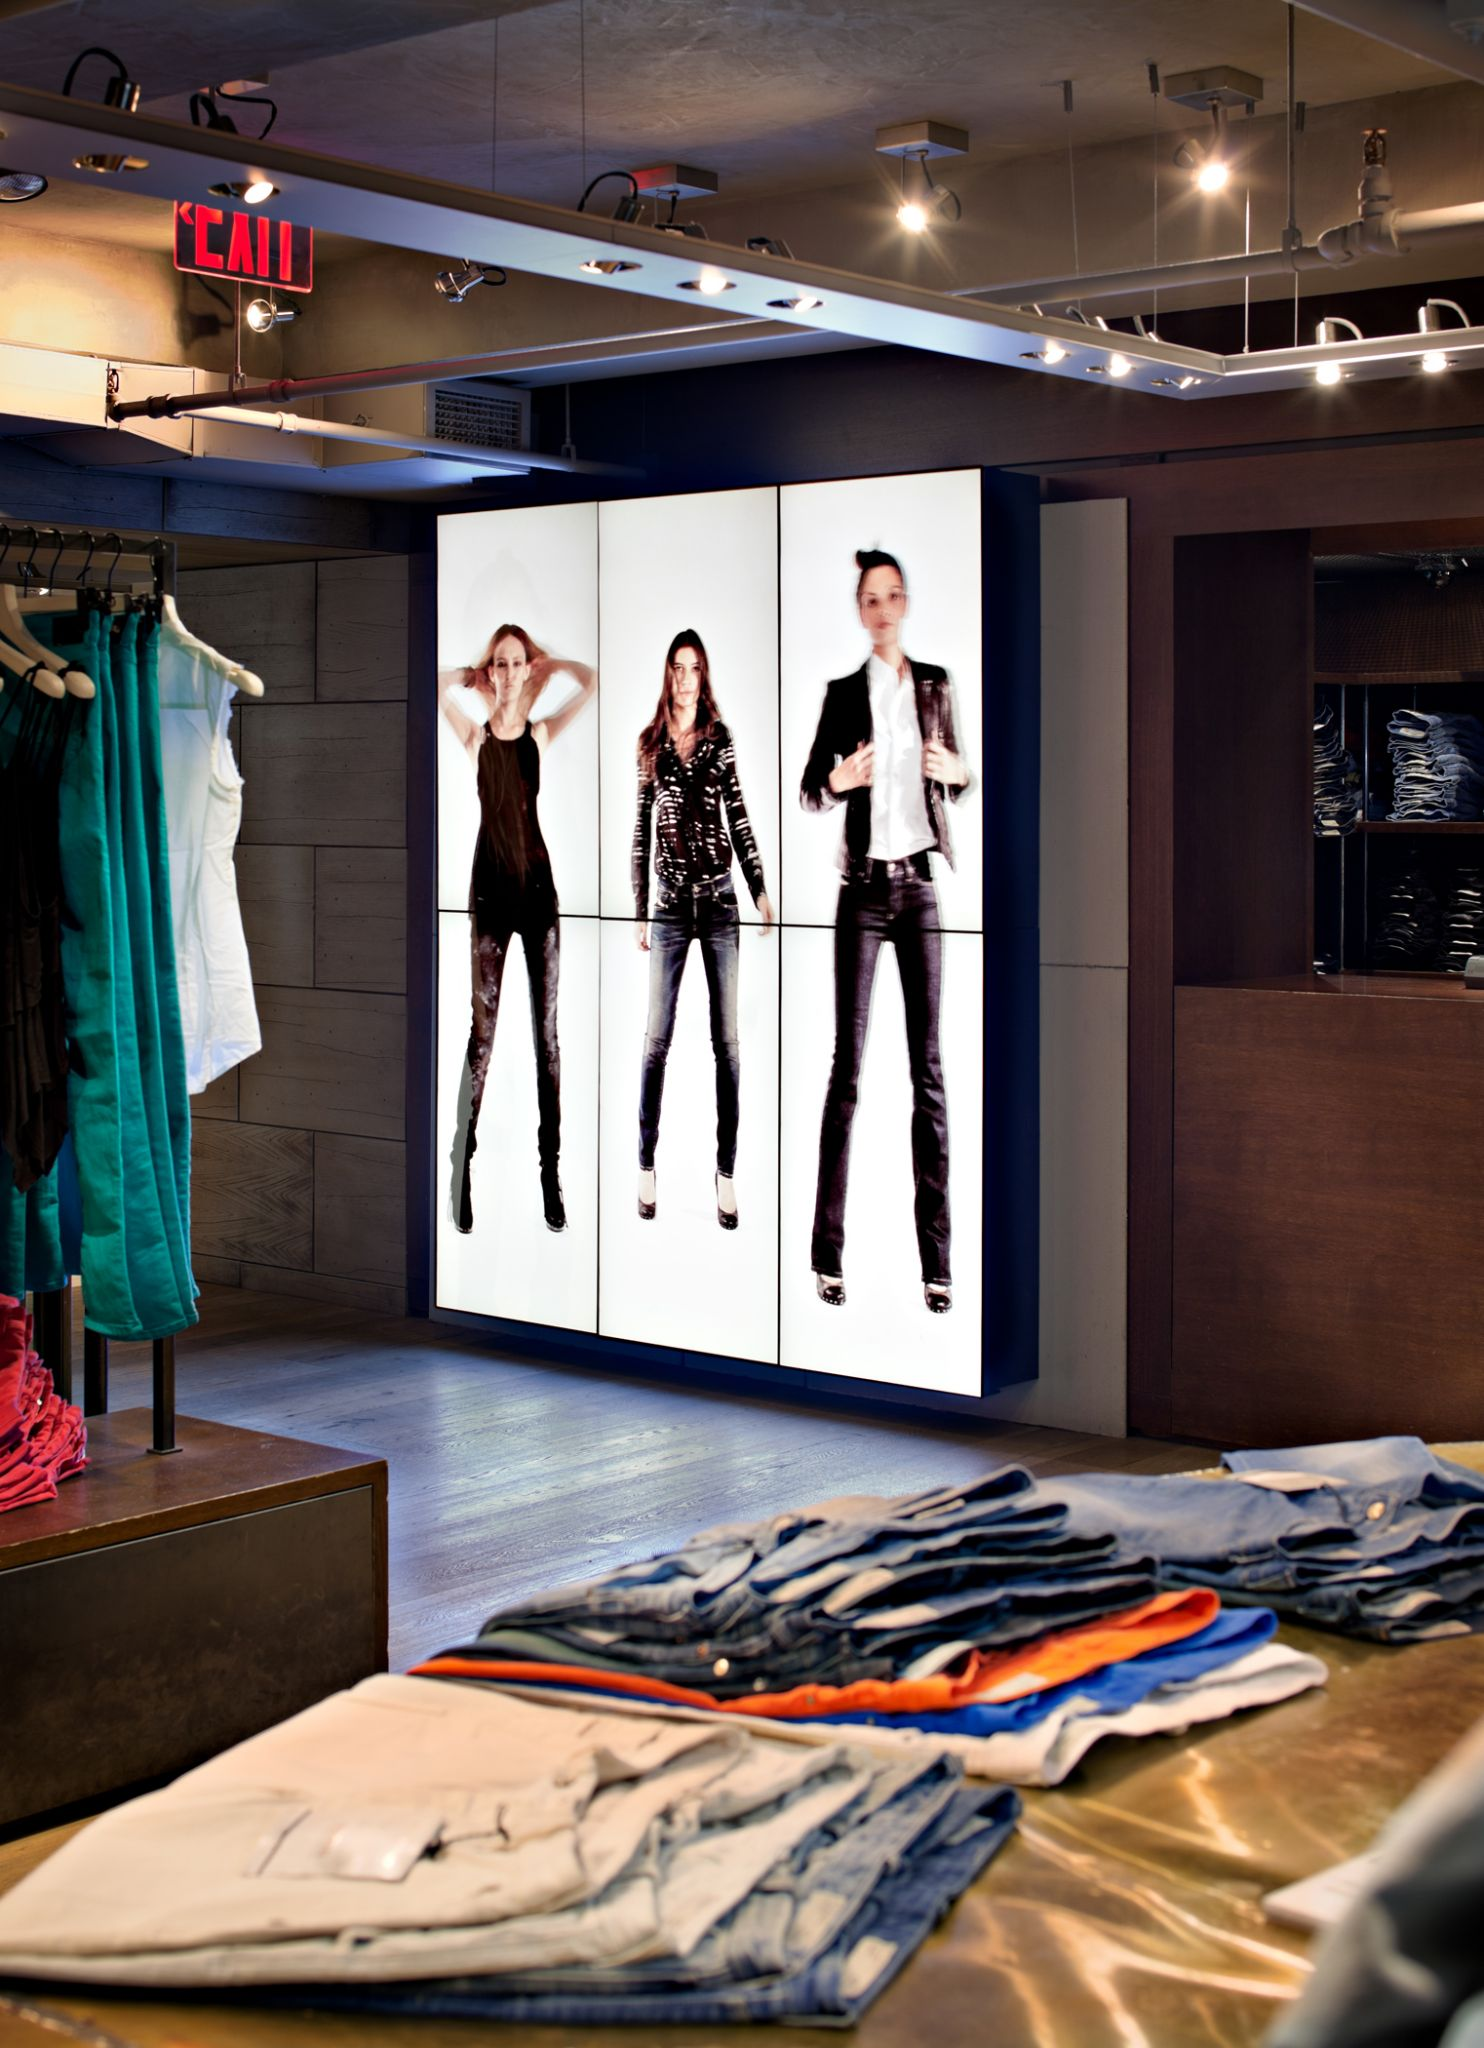 Virtual clothing store